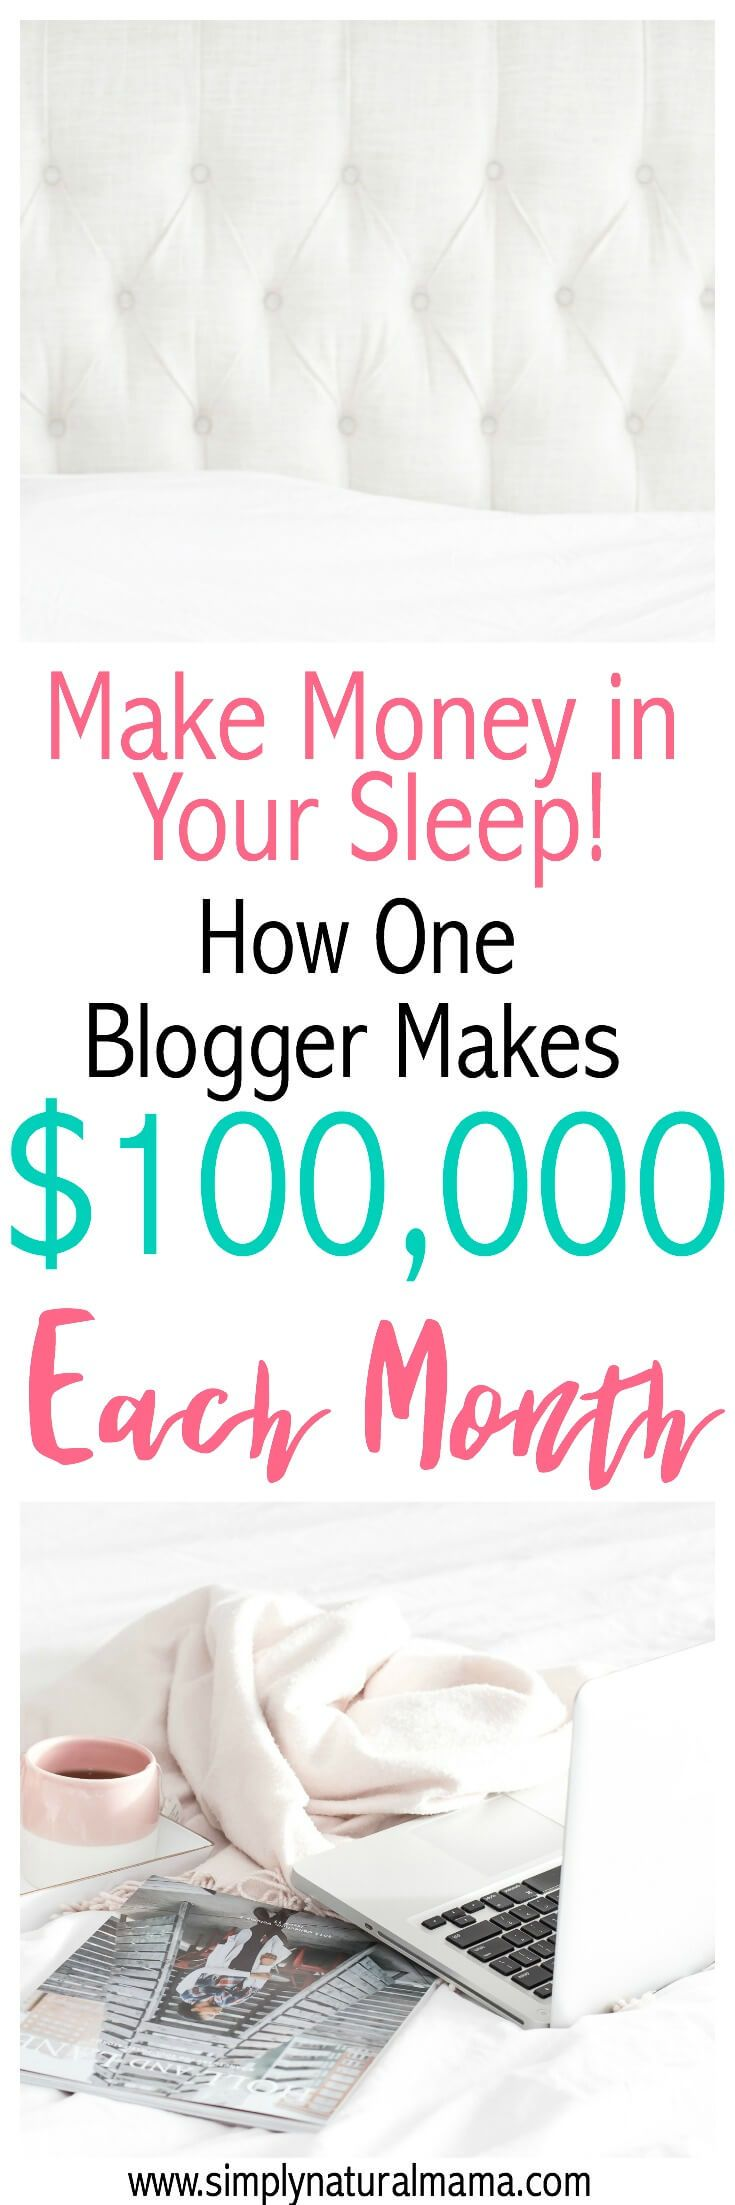 This was an unbelievable interview!  I can't believe that someone makes $100,000 each month blogging, and half of that she earns in her sleep.  This was truly inspiring and makes me want to monetize my blog and start doing affiliate marketing! via @simplynaturalma